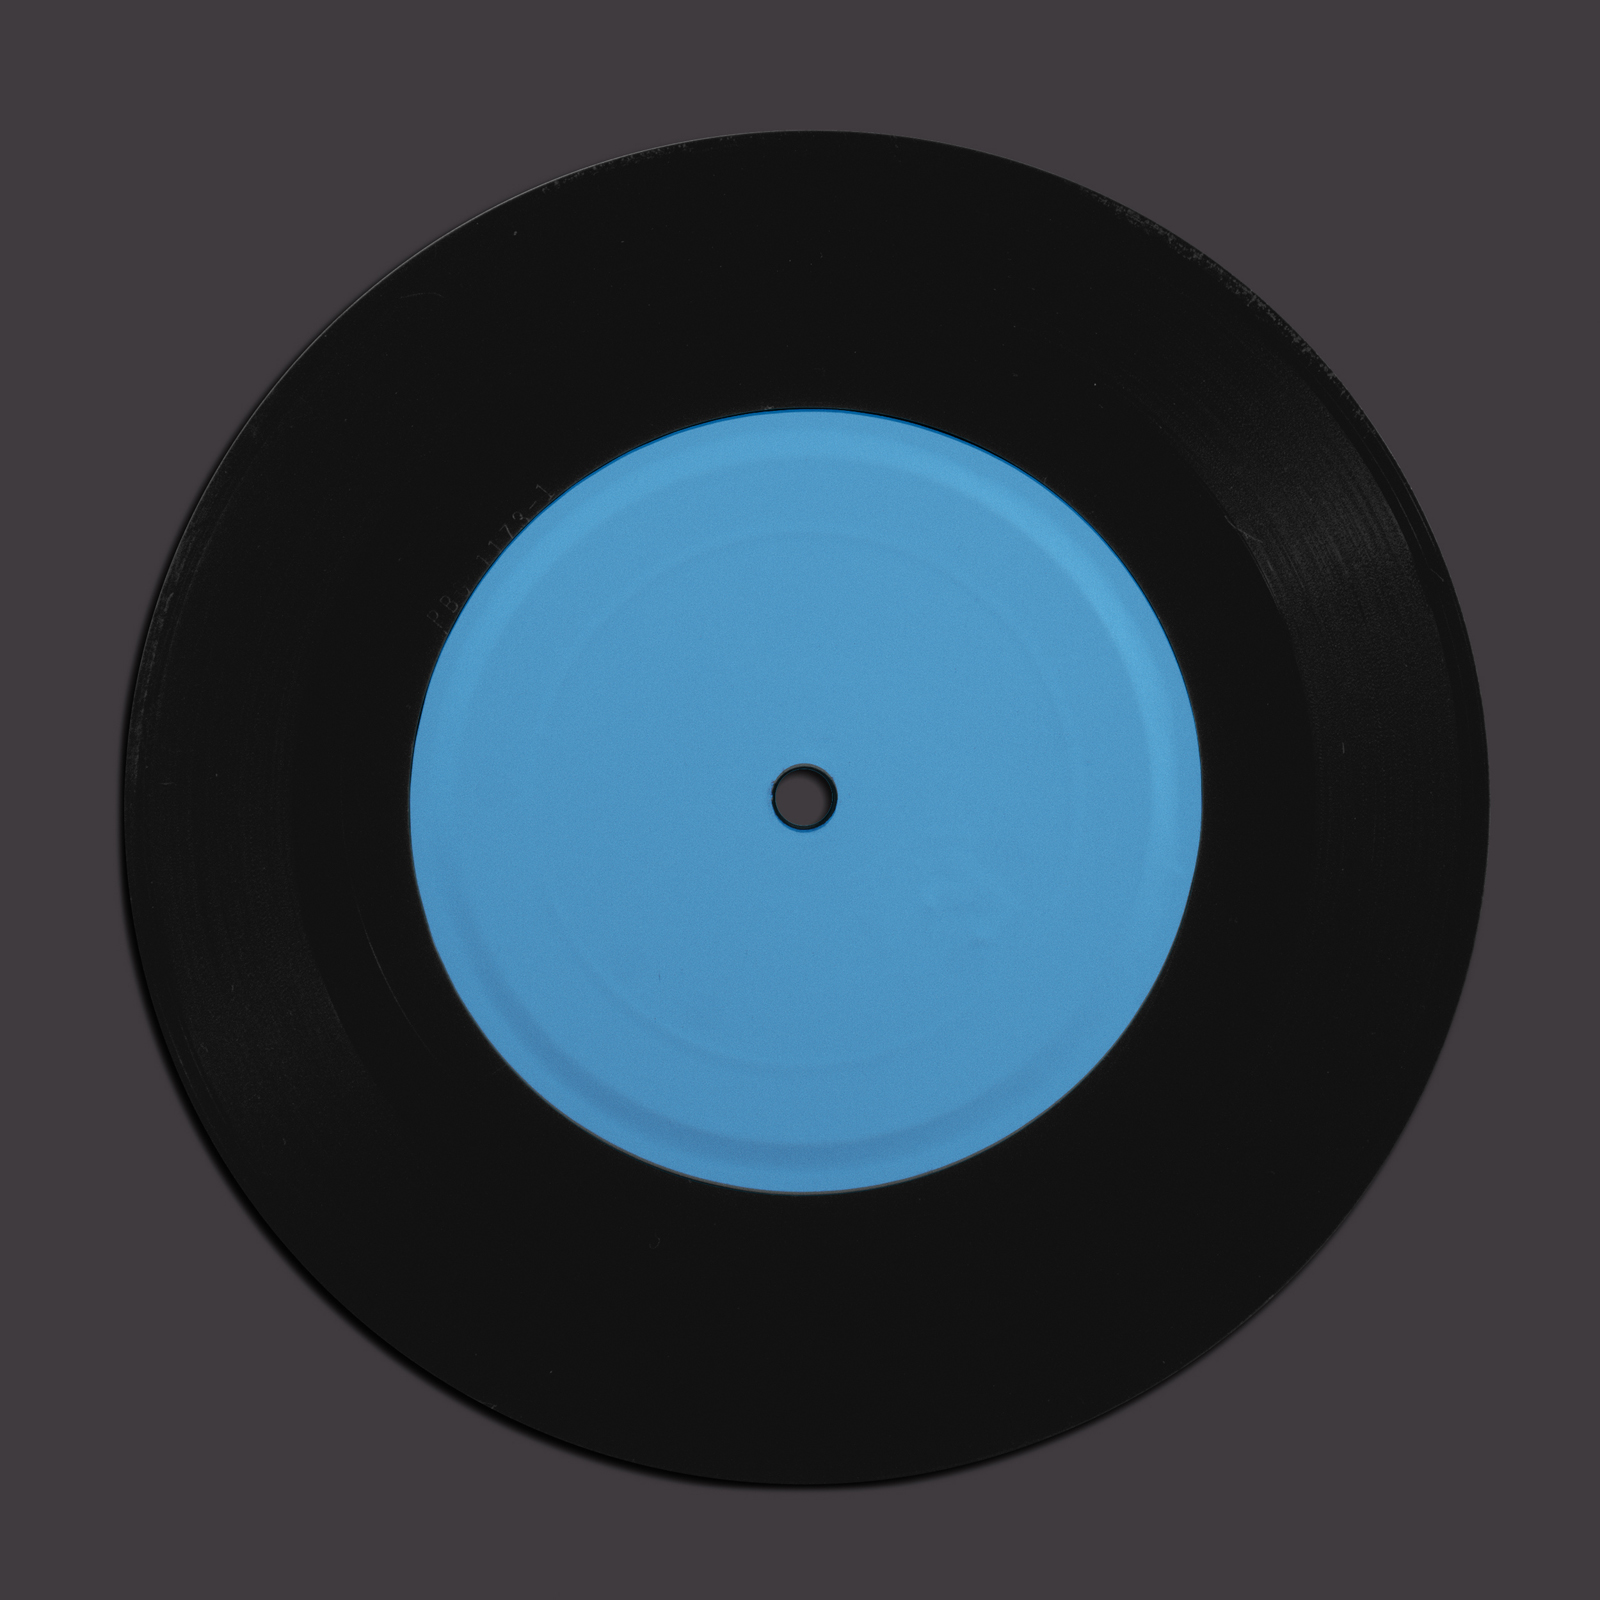 The Vinyl Record Mockup Templates Get an Upgrade! - Go Media ...